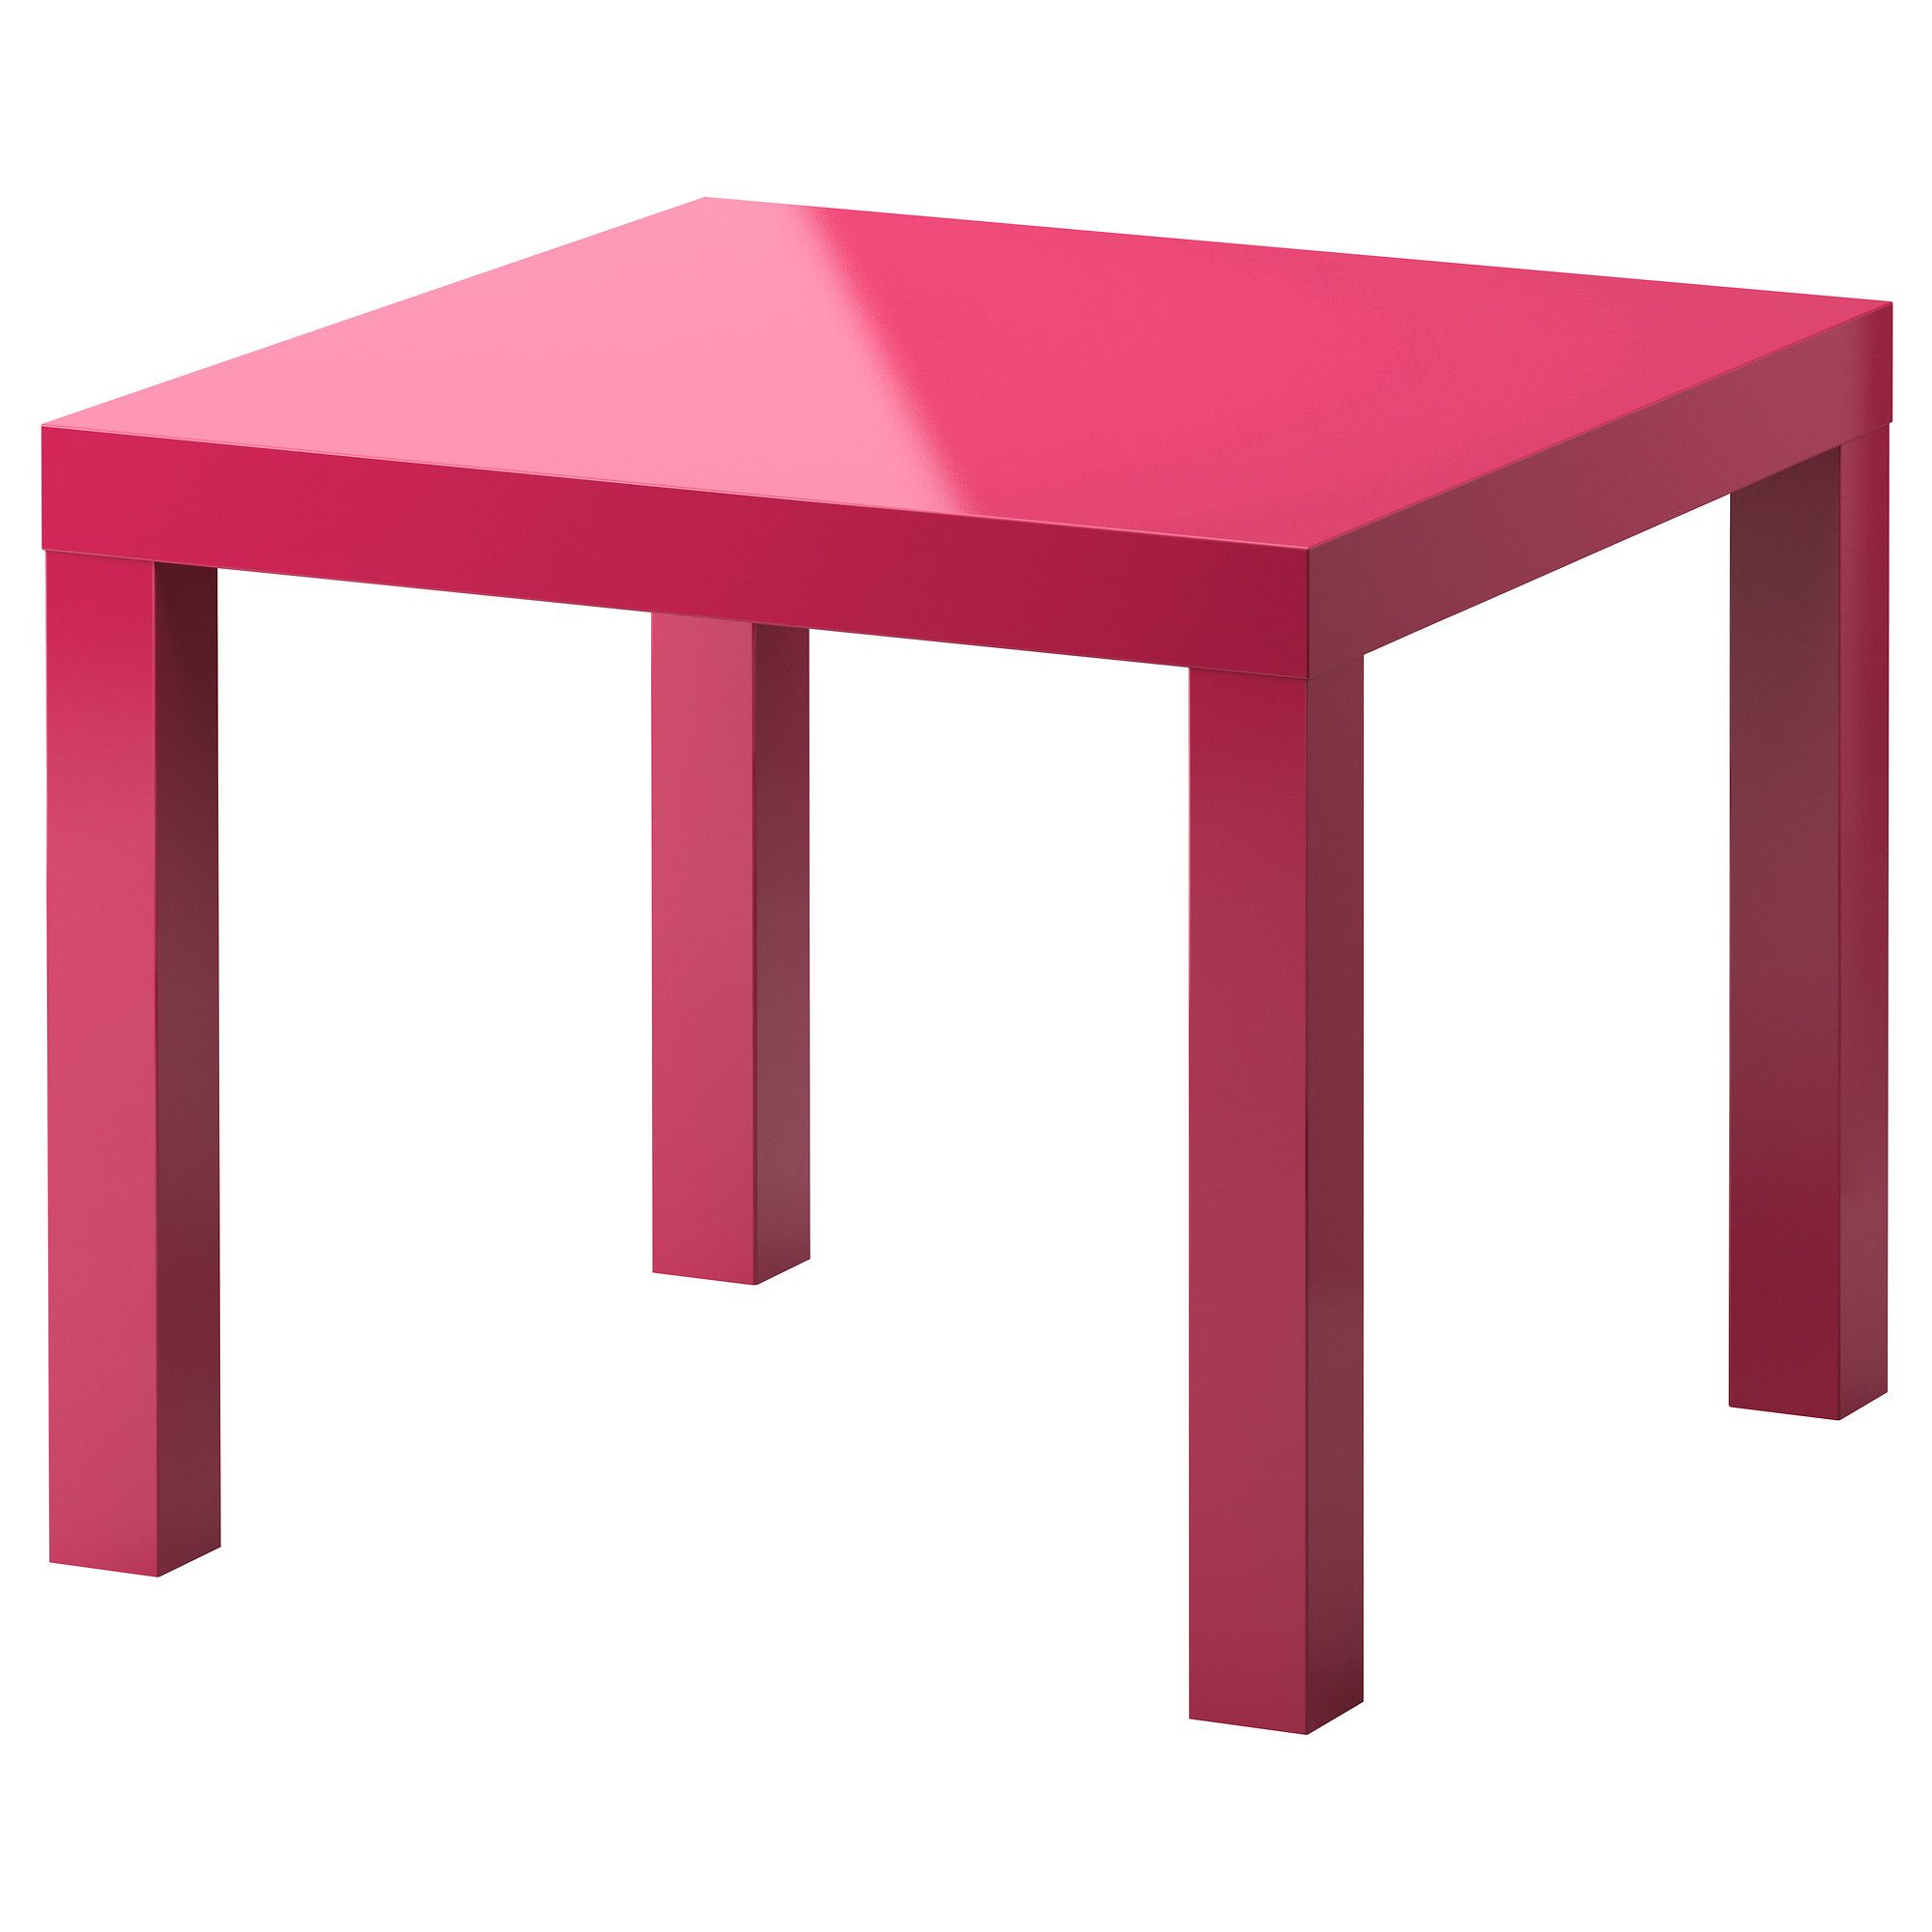 lack side table high gloss pink 21 5 8x21 5 8 ikea ikea pinterest high gloss room. Black Bedroom Furniture Sets. Home Design Ideas